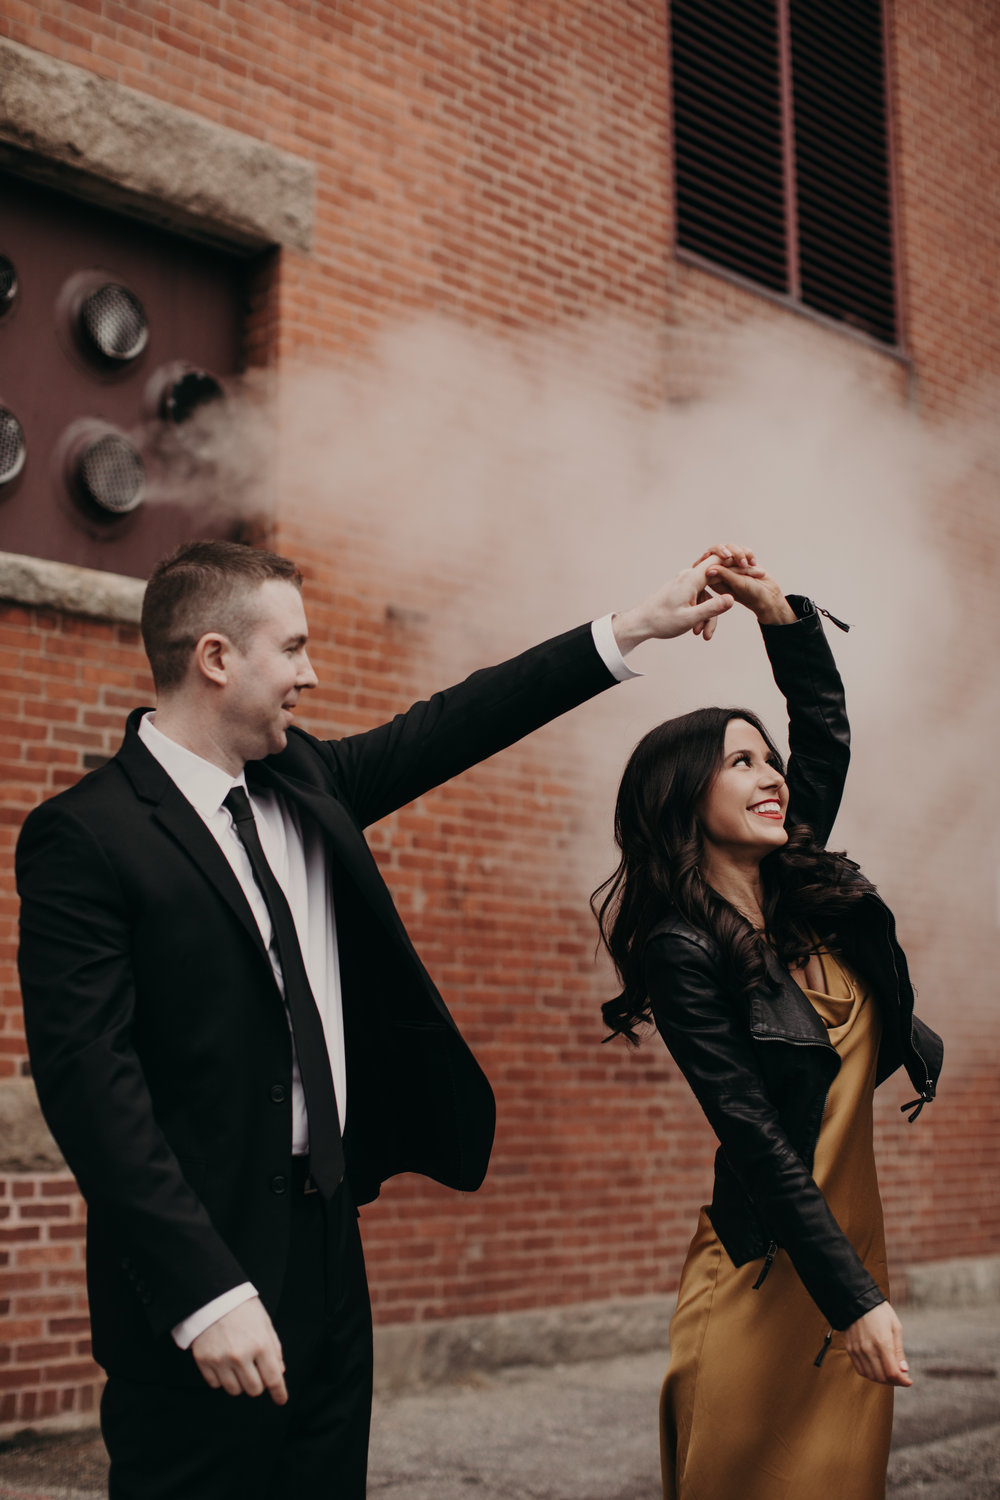 Chris_Marissa_Downtown_Providence_Rhode_Island_Engagement_Session_006.jpeg